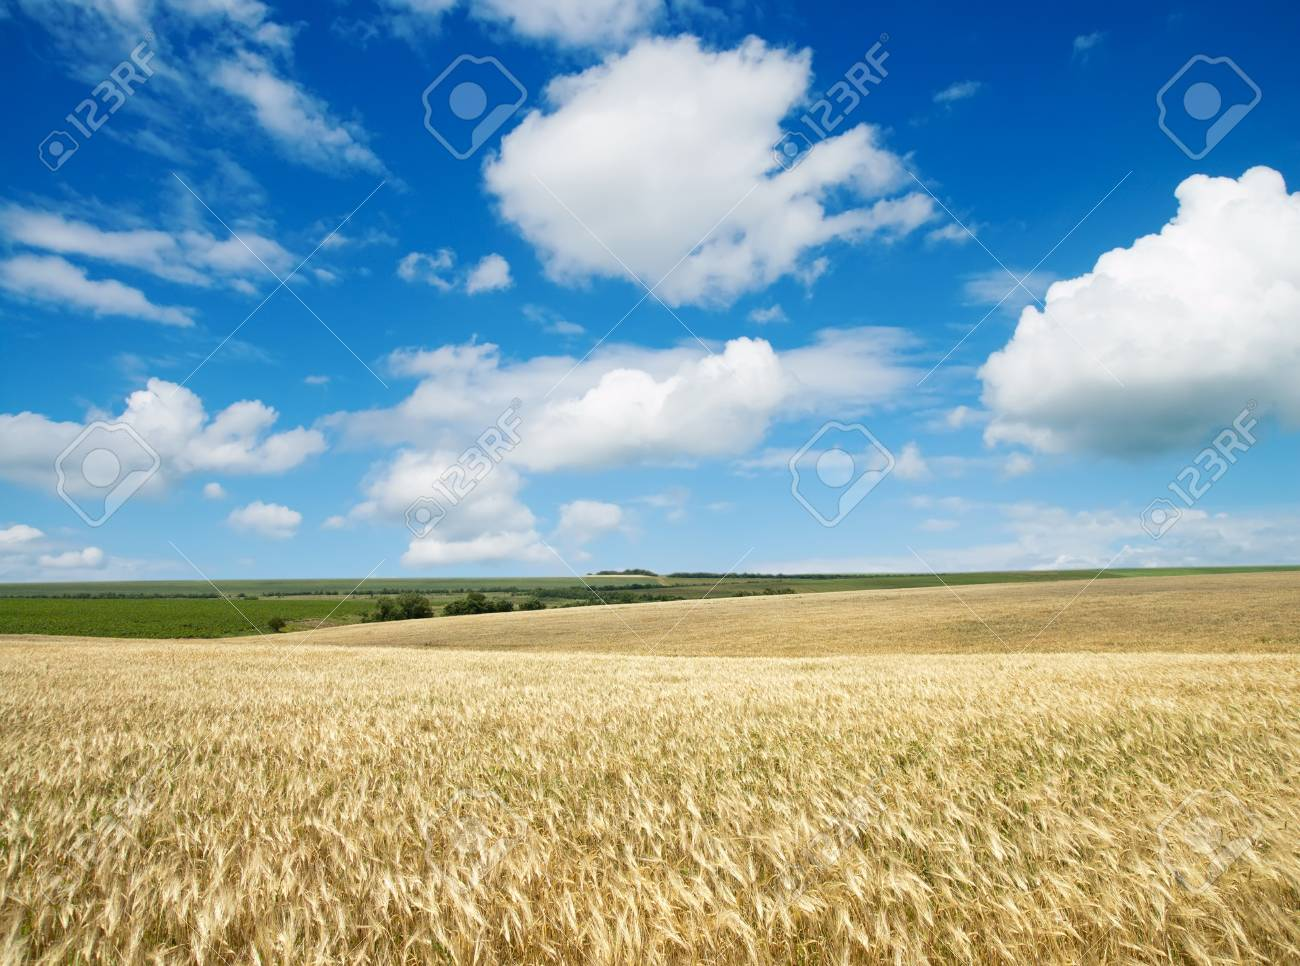 field of wheat under cloudy sky Stock Photo - 9086265